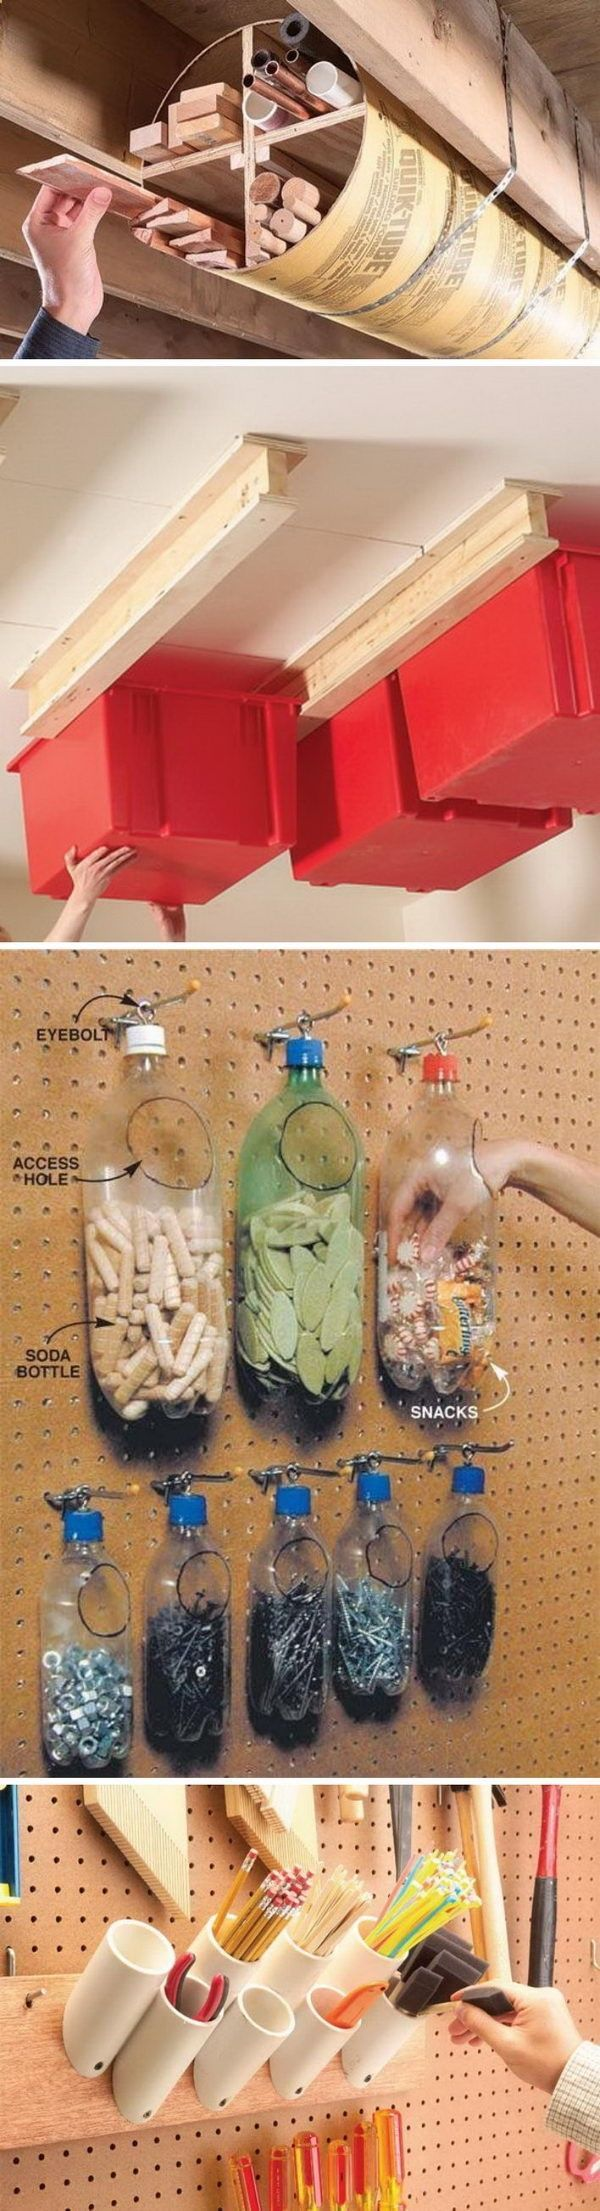 Photo of Shed Plans – Clever Garage Storage and Organization Ideas – Now You Can Build AN…